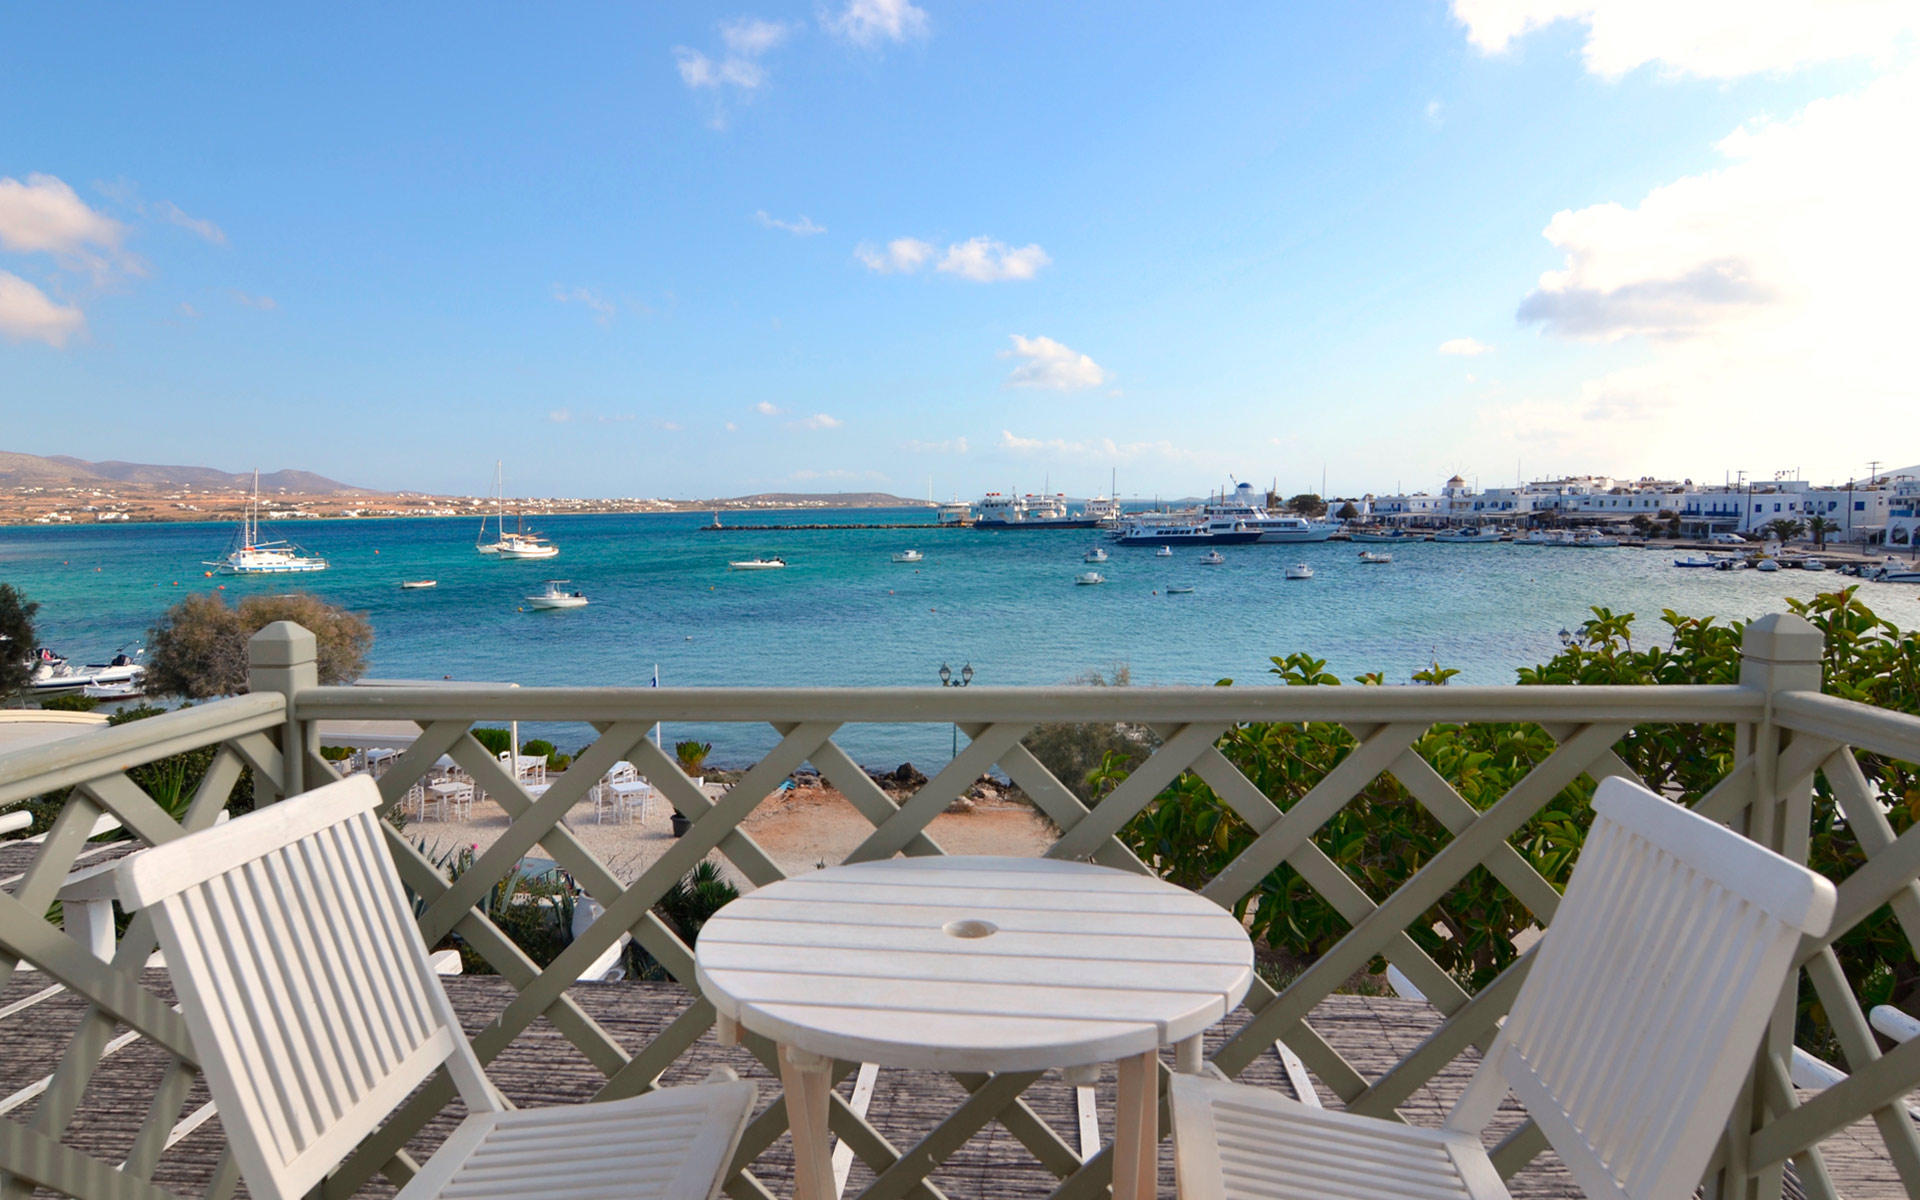 Artemis Sea View Hotel in Antiparos